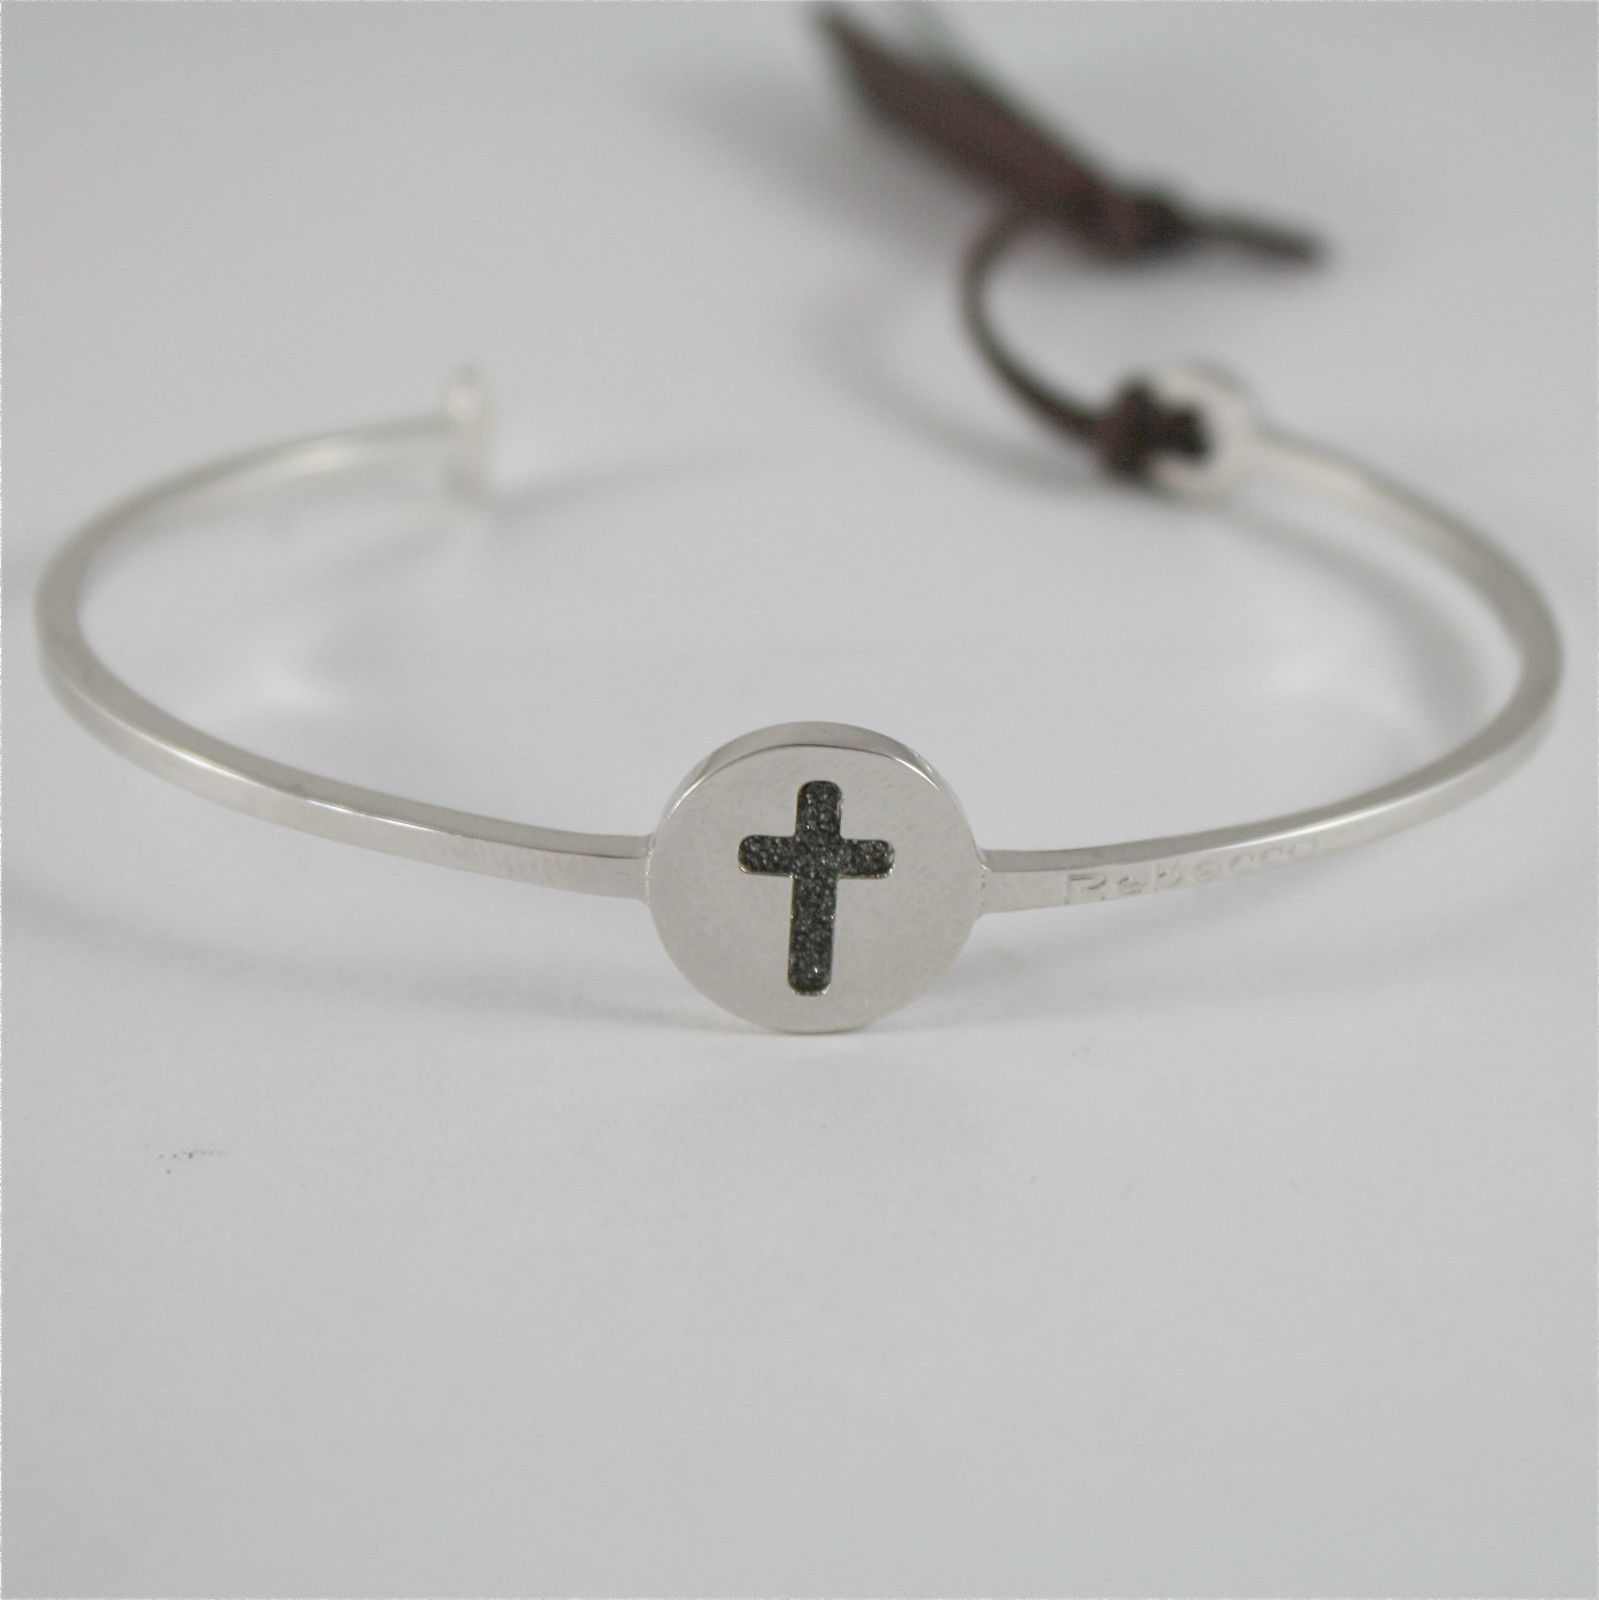 WHITE GOLD PLATED BANGLE BRONZE REBECCA BRACELET CROSS MWGBBN80 MADE IN ITALY